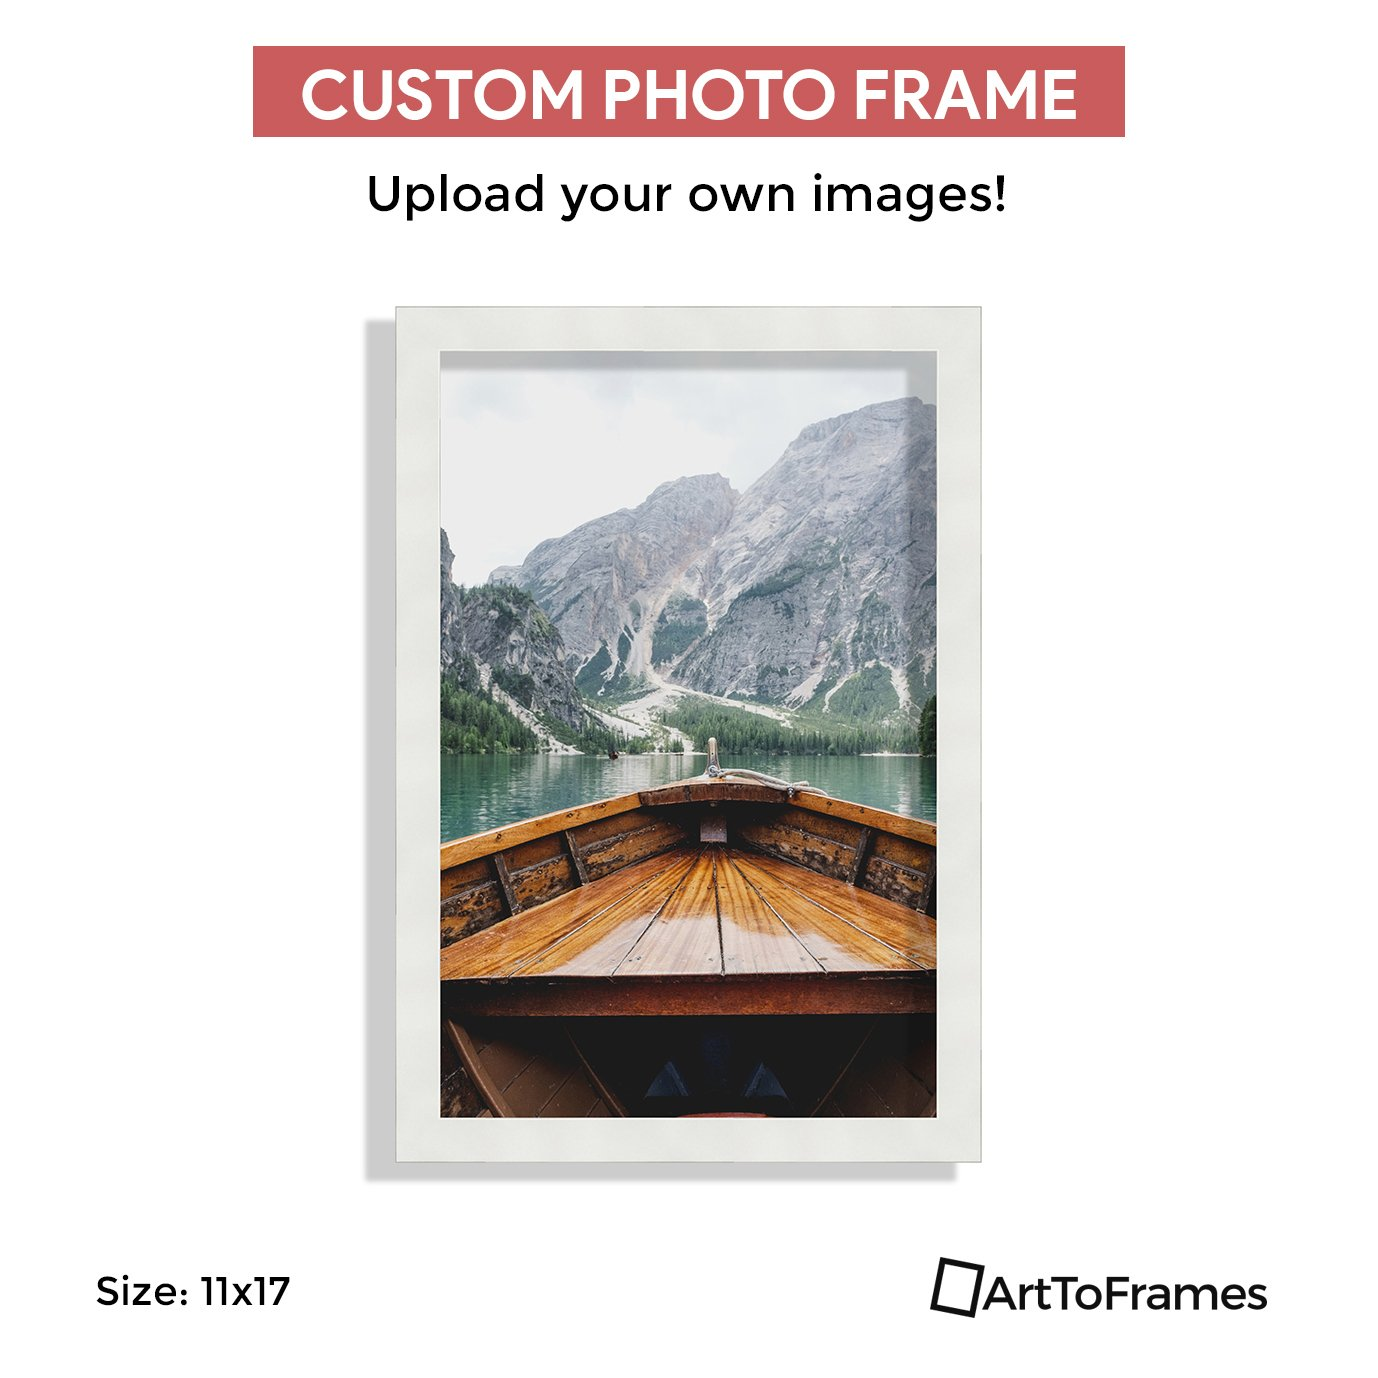 Custom Framing on Amazon High Definition Quality Photo 11x17, Framed in Custom White Frame No Mat by ArtToFrames